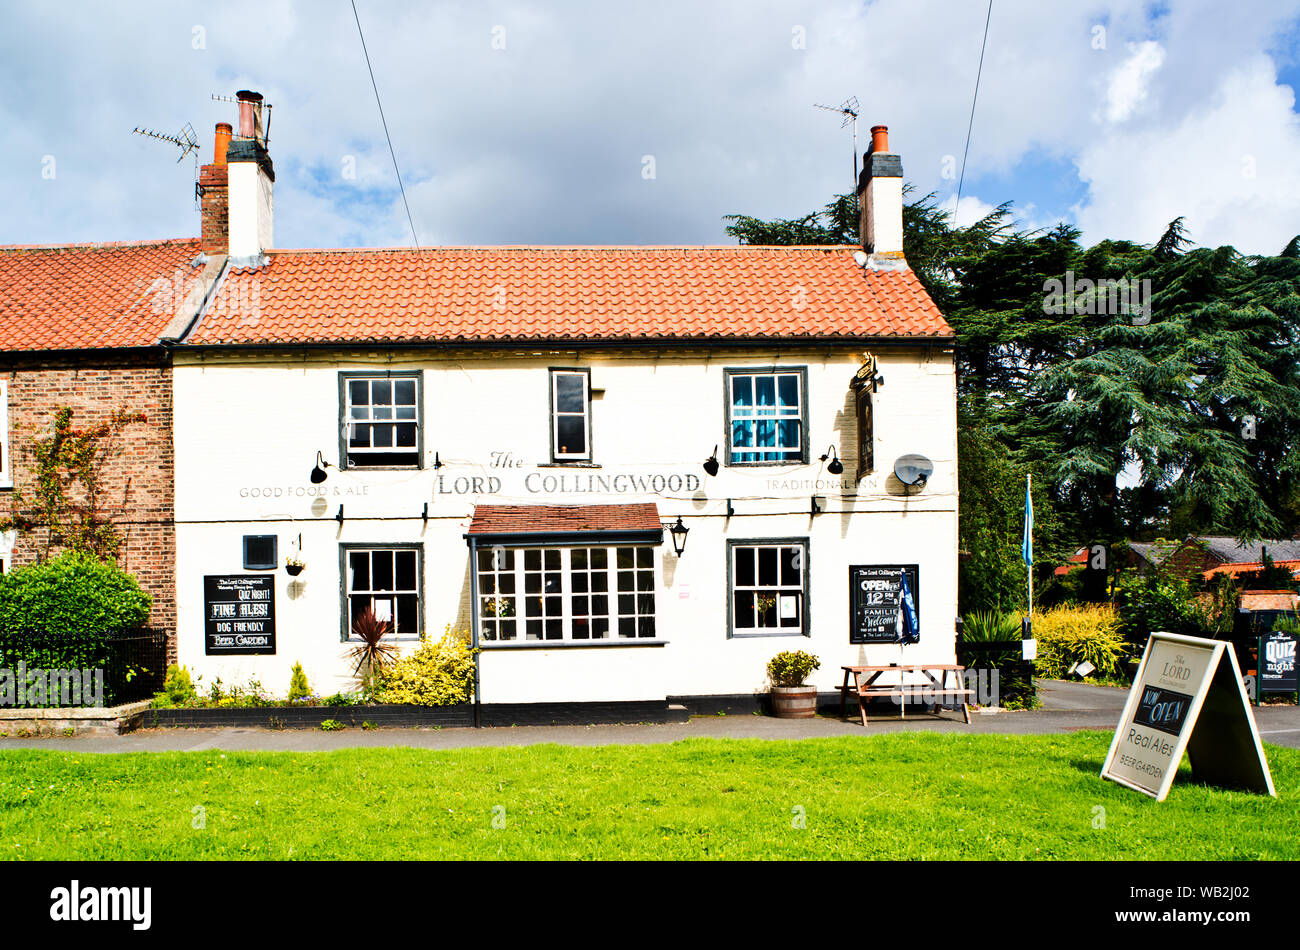 The Lord Collingwood pub, Upper Poppleton, North Yorkshire, England Stock Photo